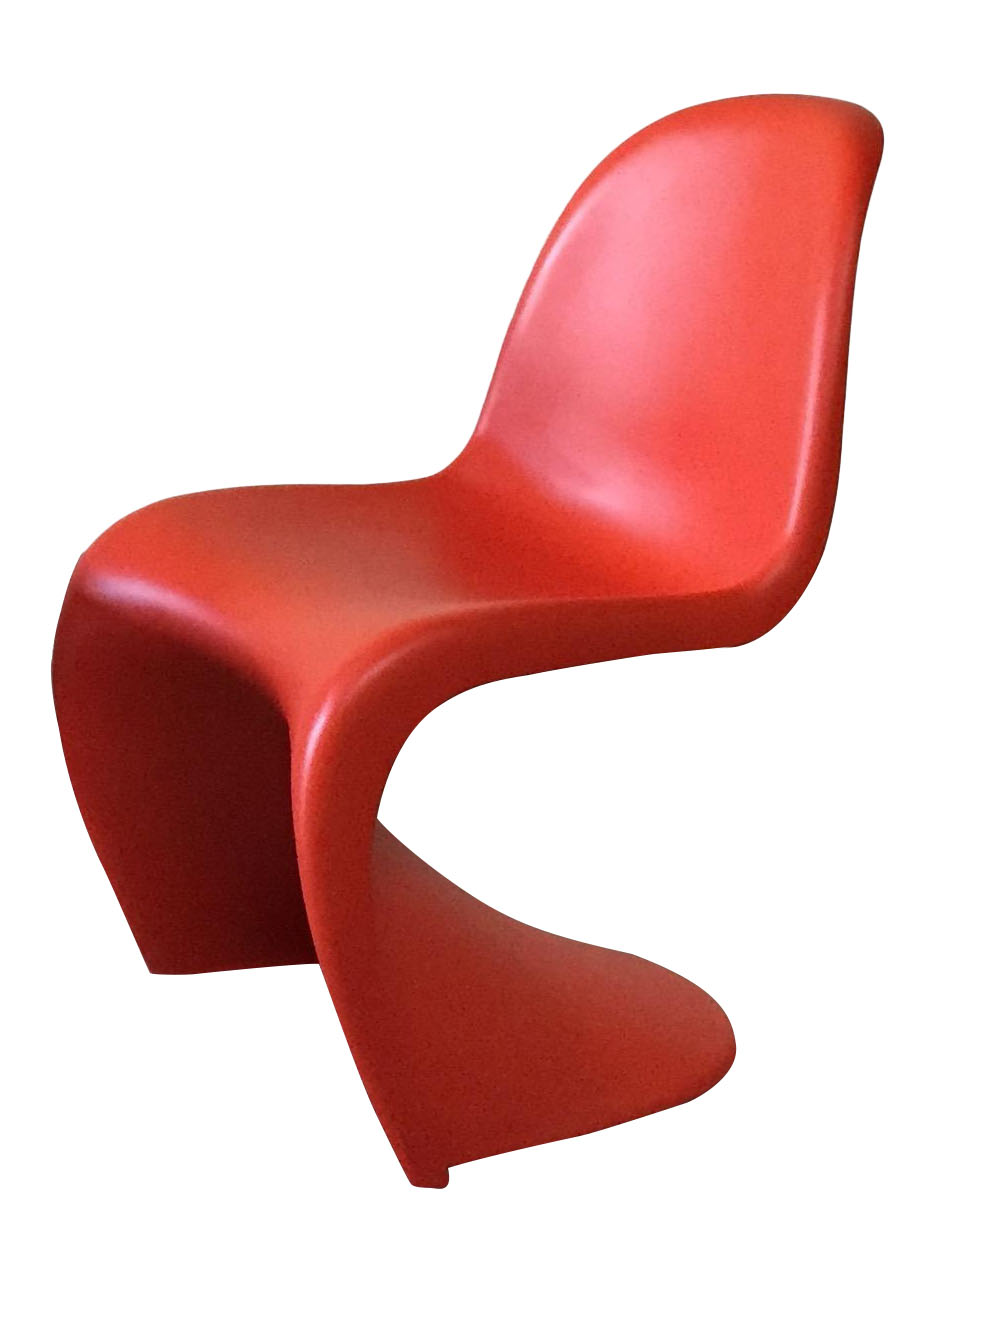 The Panton Chair, Source